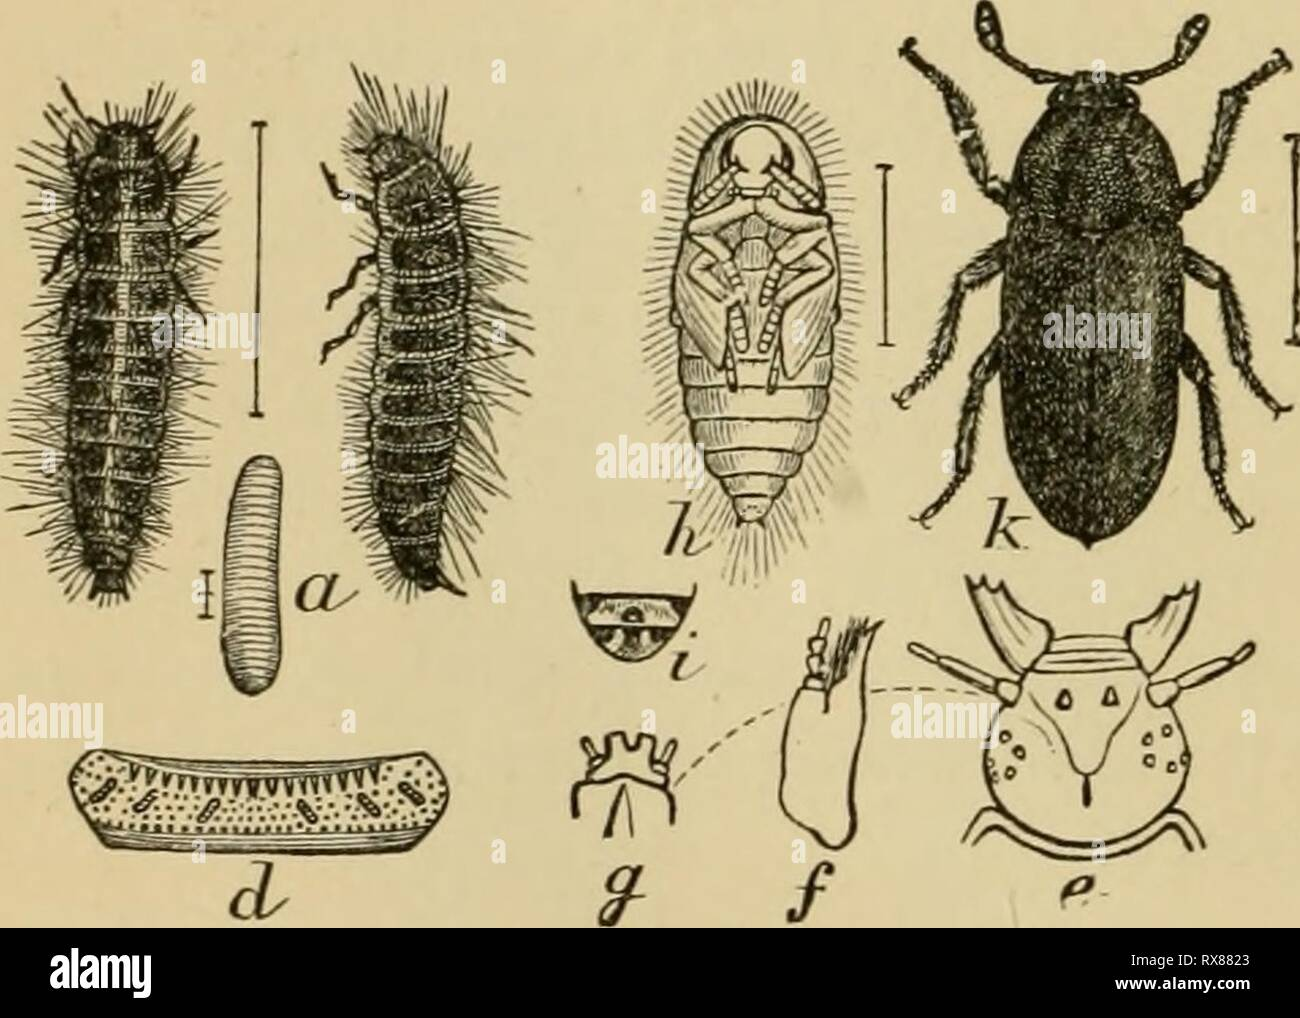 ... the farmer and the fruit grower, and for use as a text-book in agricultural schools and colleges; economicentomol00smit Year: 1906 The larder-beetle, ...